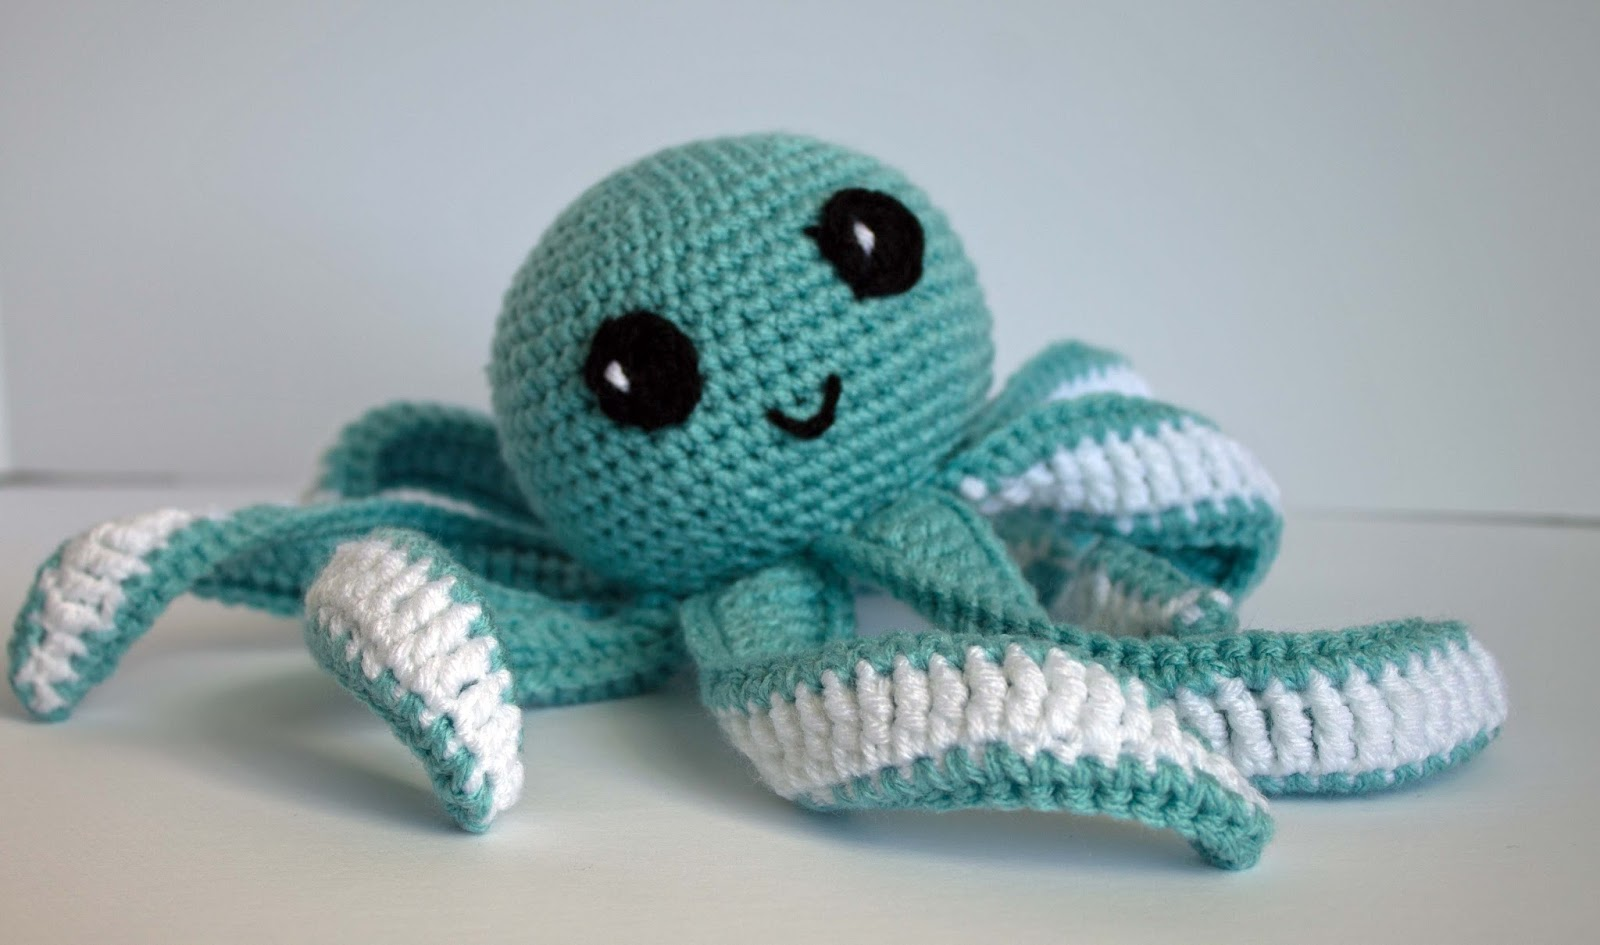 Crochet Patterns Octopus : Amigurumi Octopus Baby Toy Free Pattern Part 2 - The Friendly Red Fox